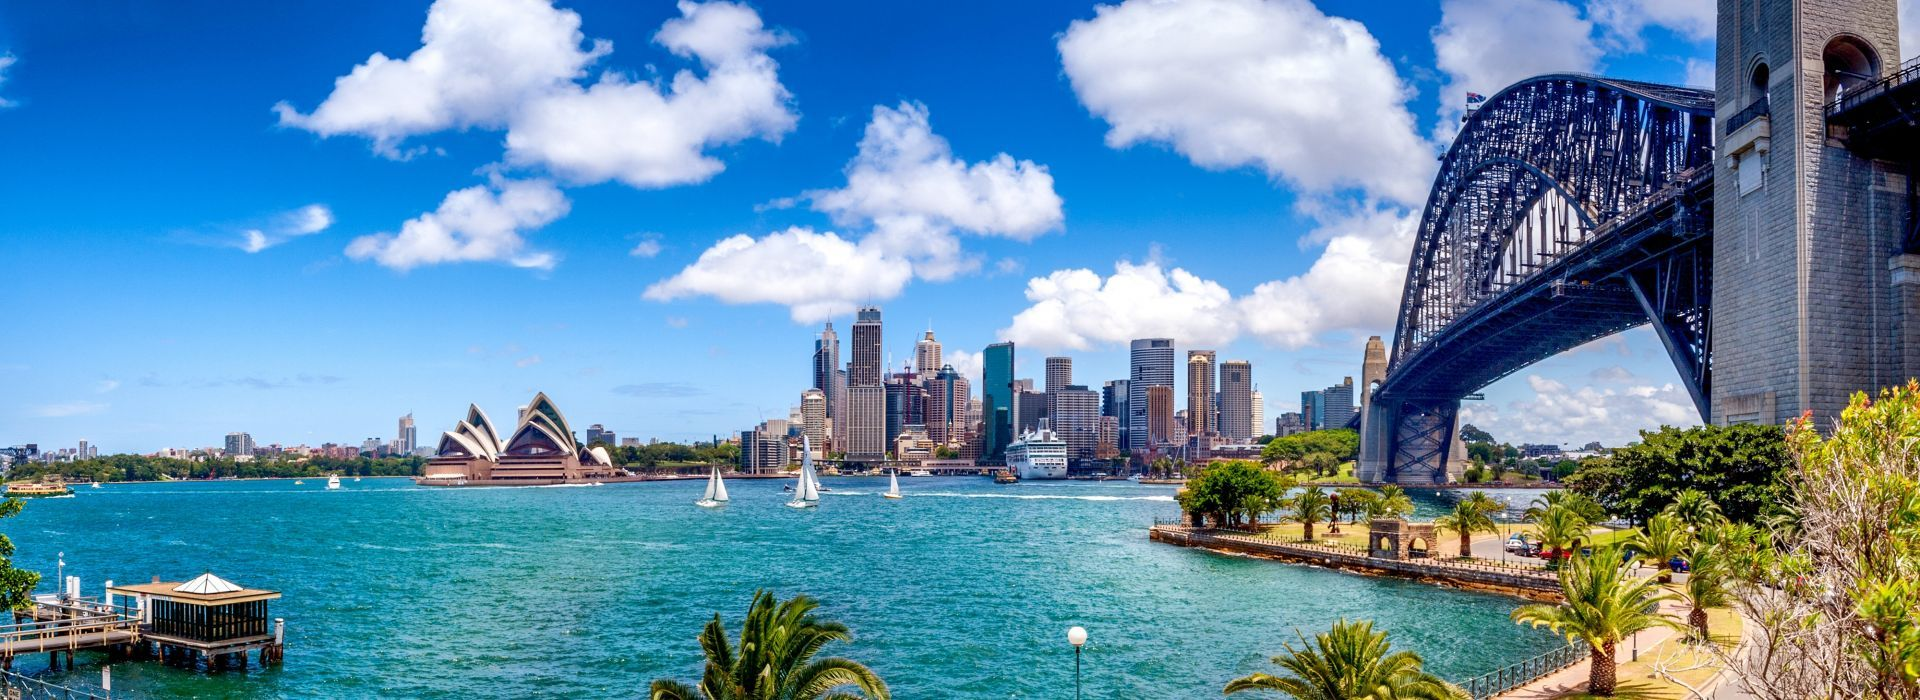 City sightseeing Tours in Melbourne